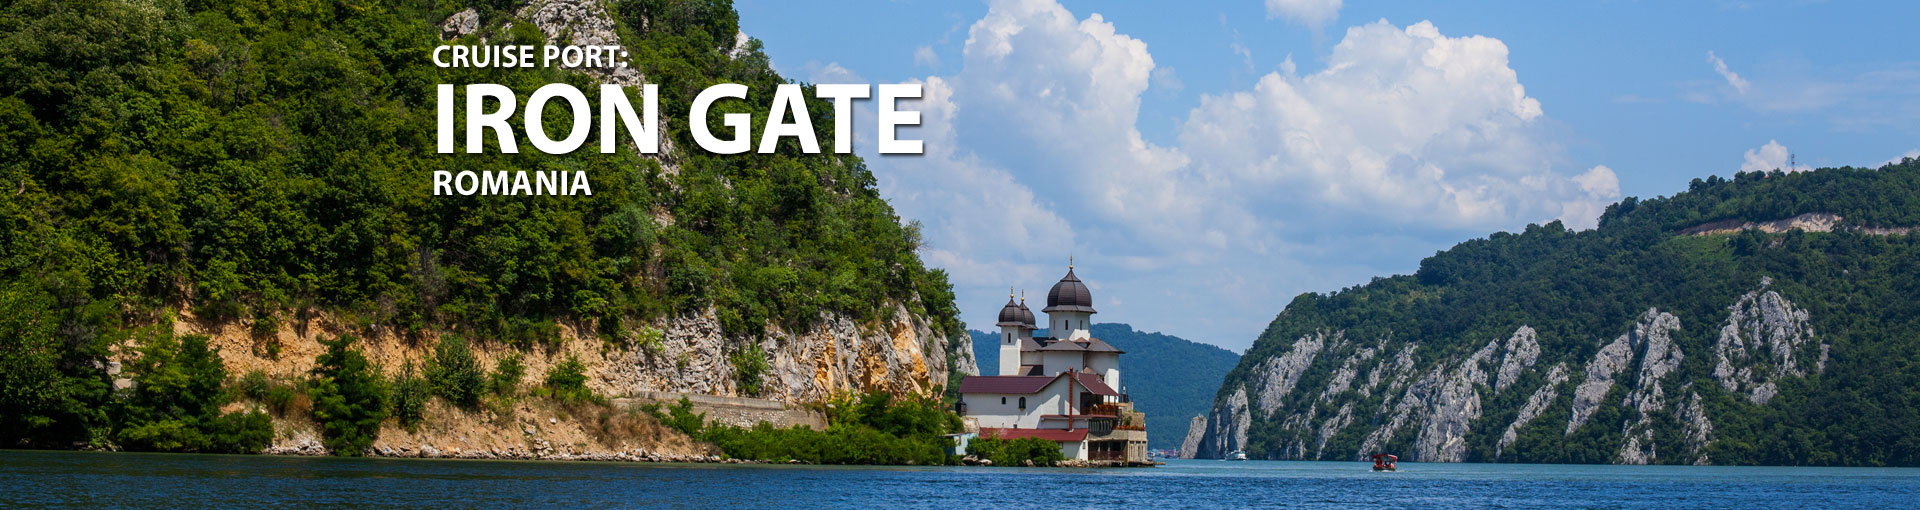 Cruises to Iron Gate, Romania